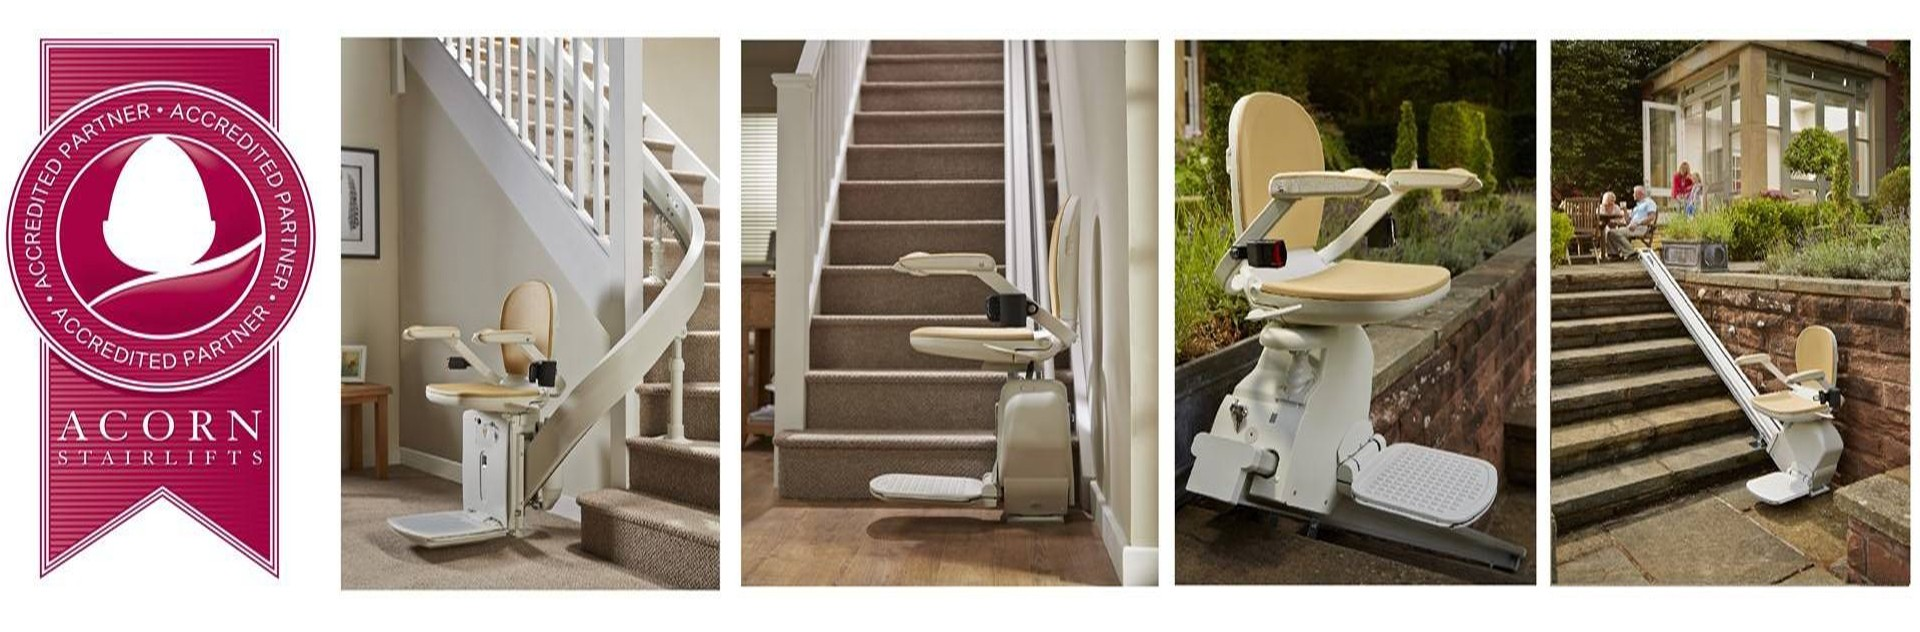 Proud Partner of ACORN STAIRLIFTS - Call Our Free Phone 0800 016 9471